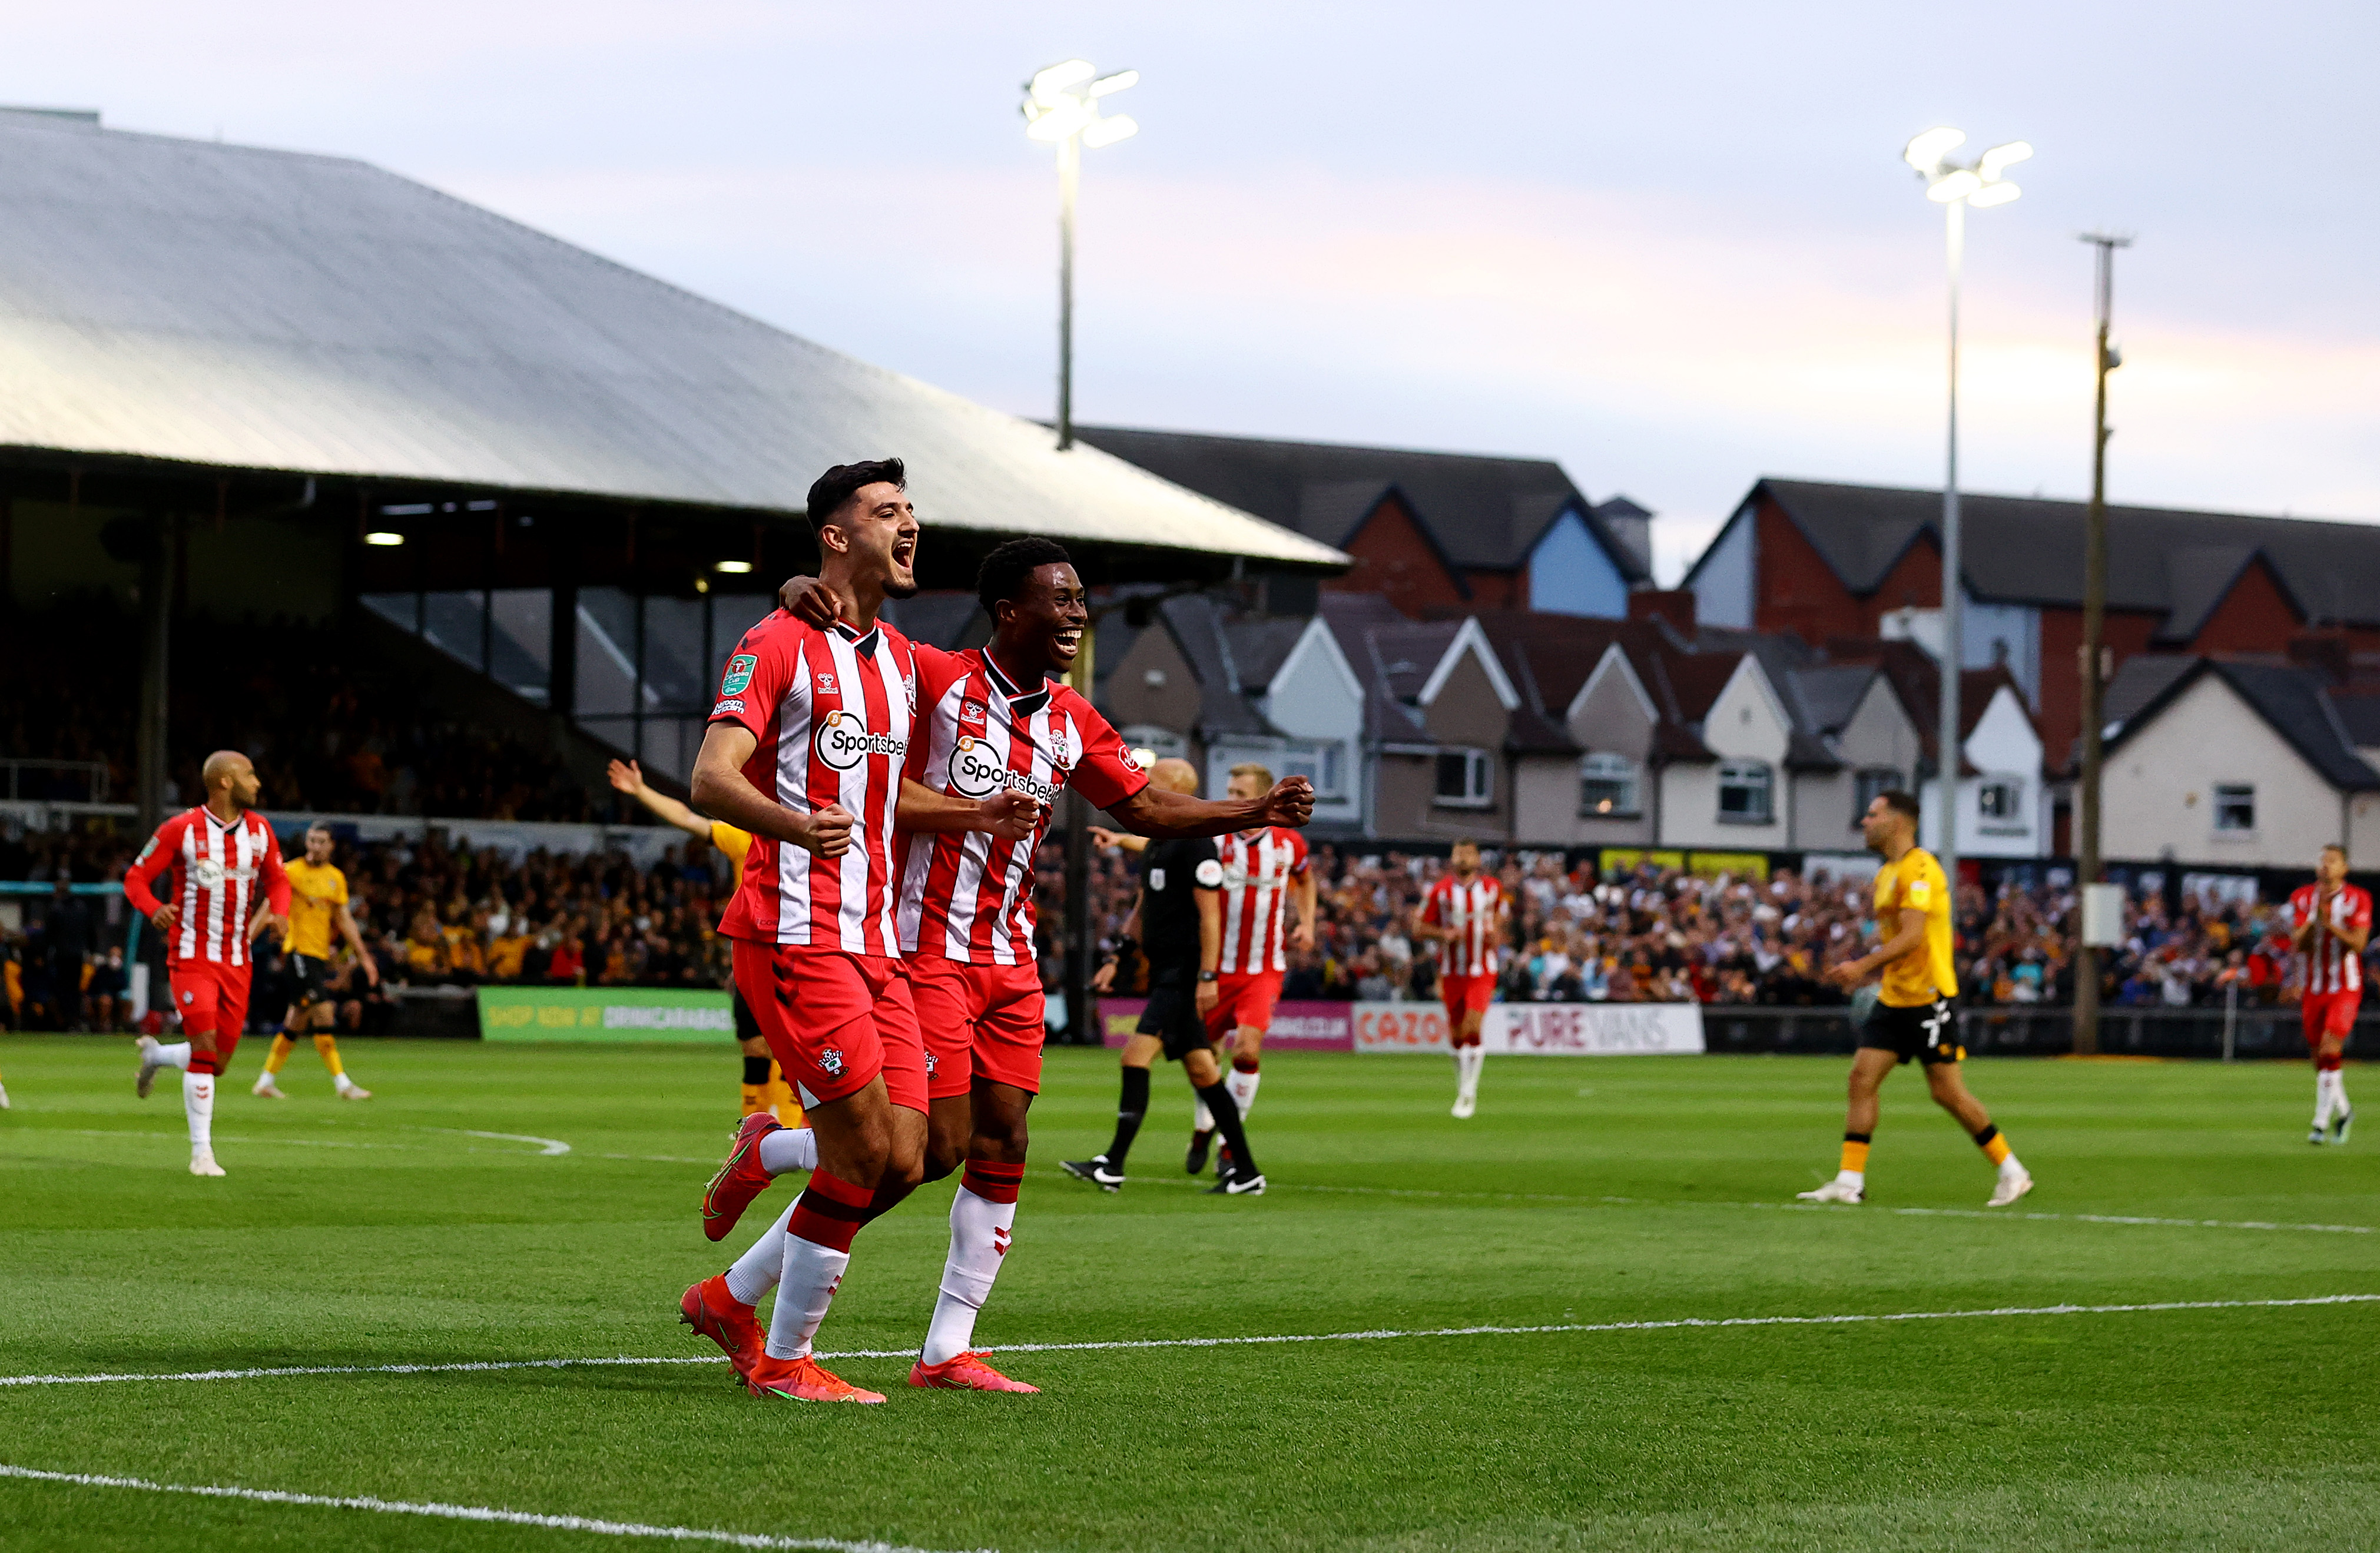 Newport County v Southampton - Carabao Cup Second Round